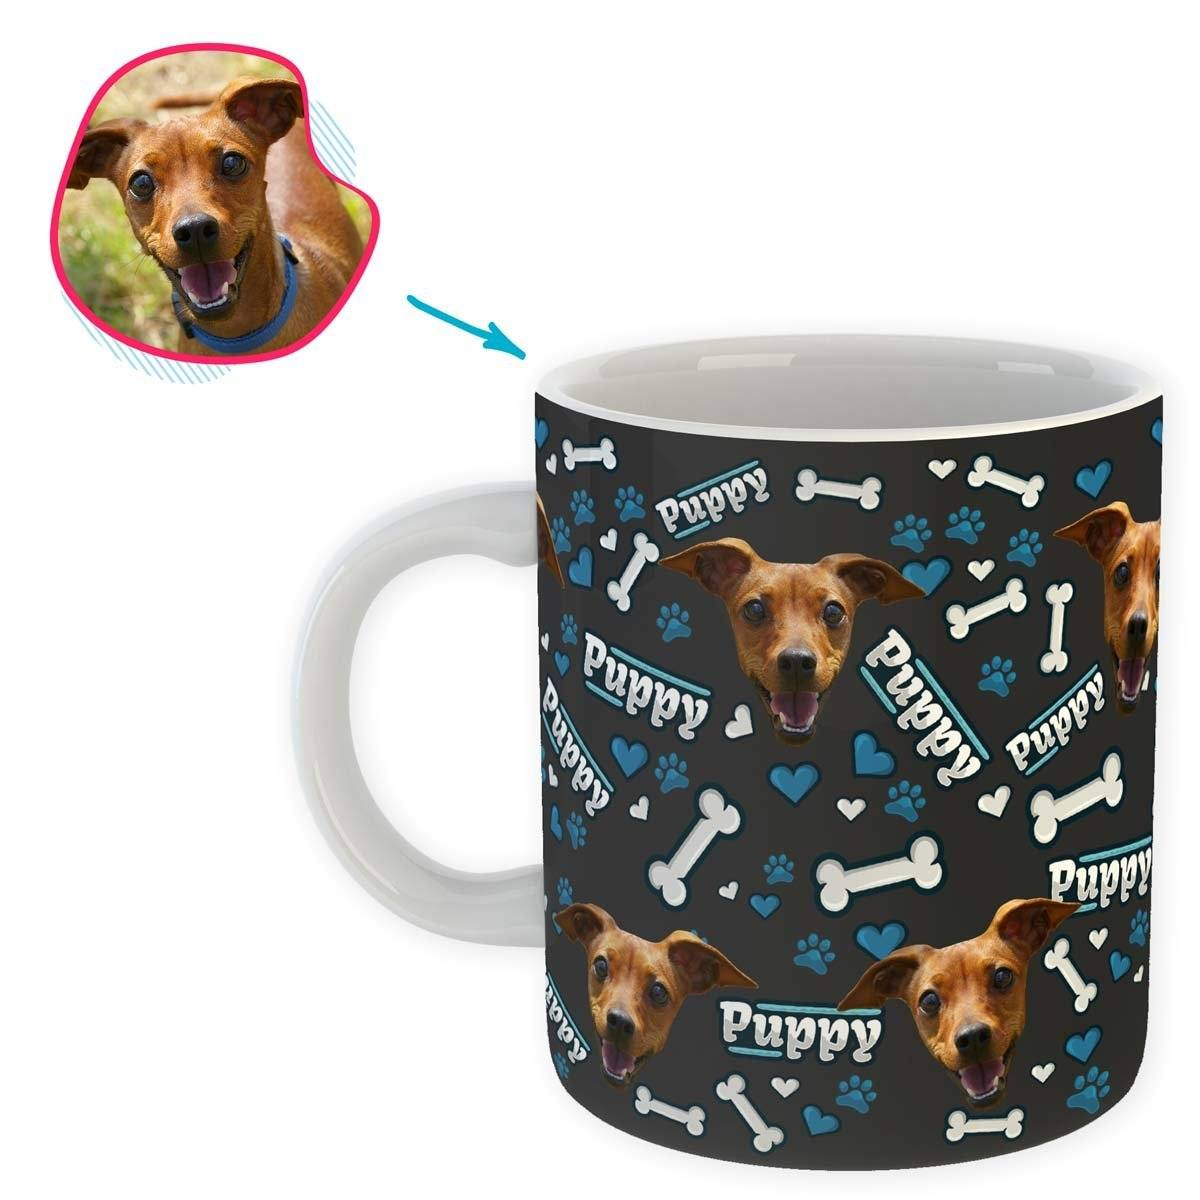 dark Puppy mug personalized with photo of face printed on it